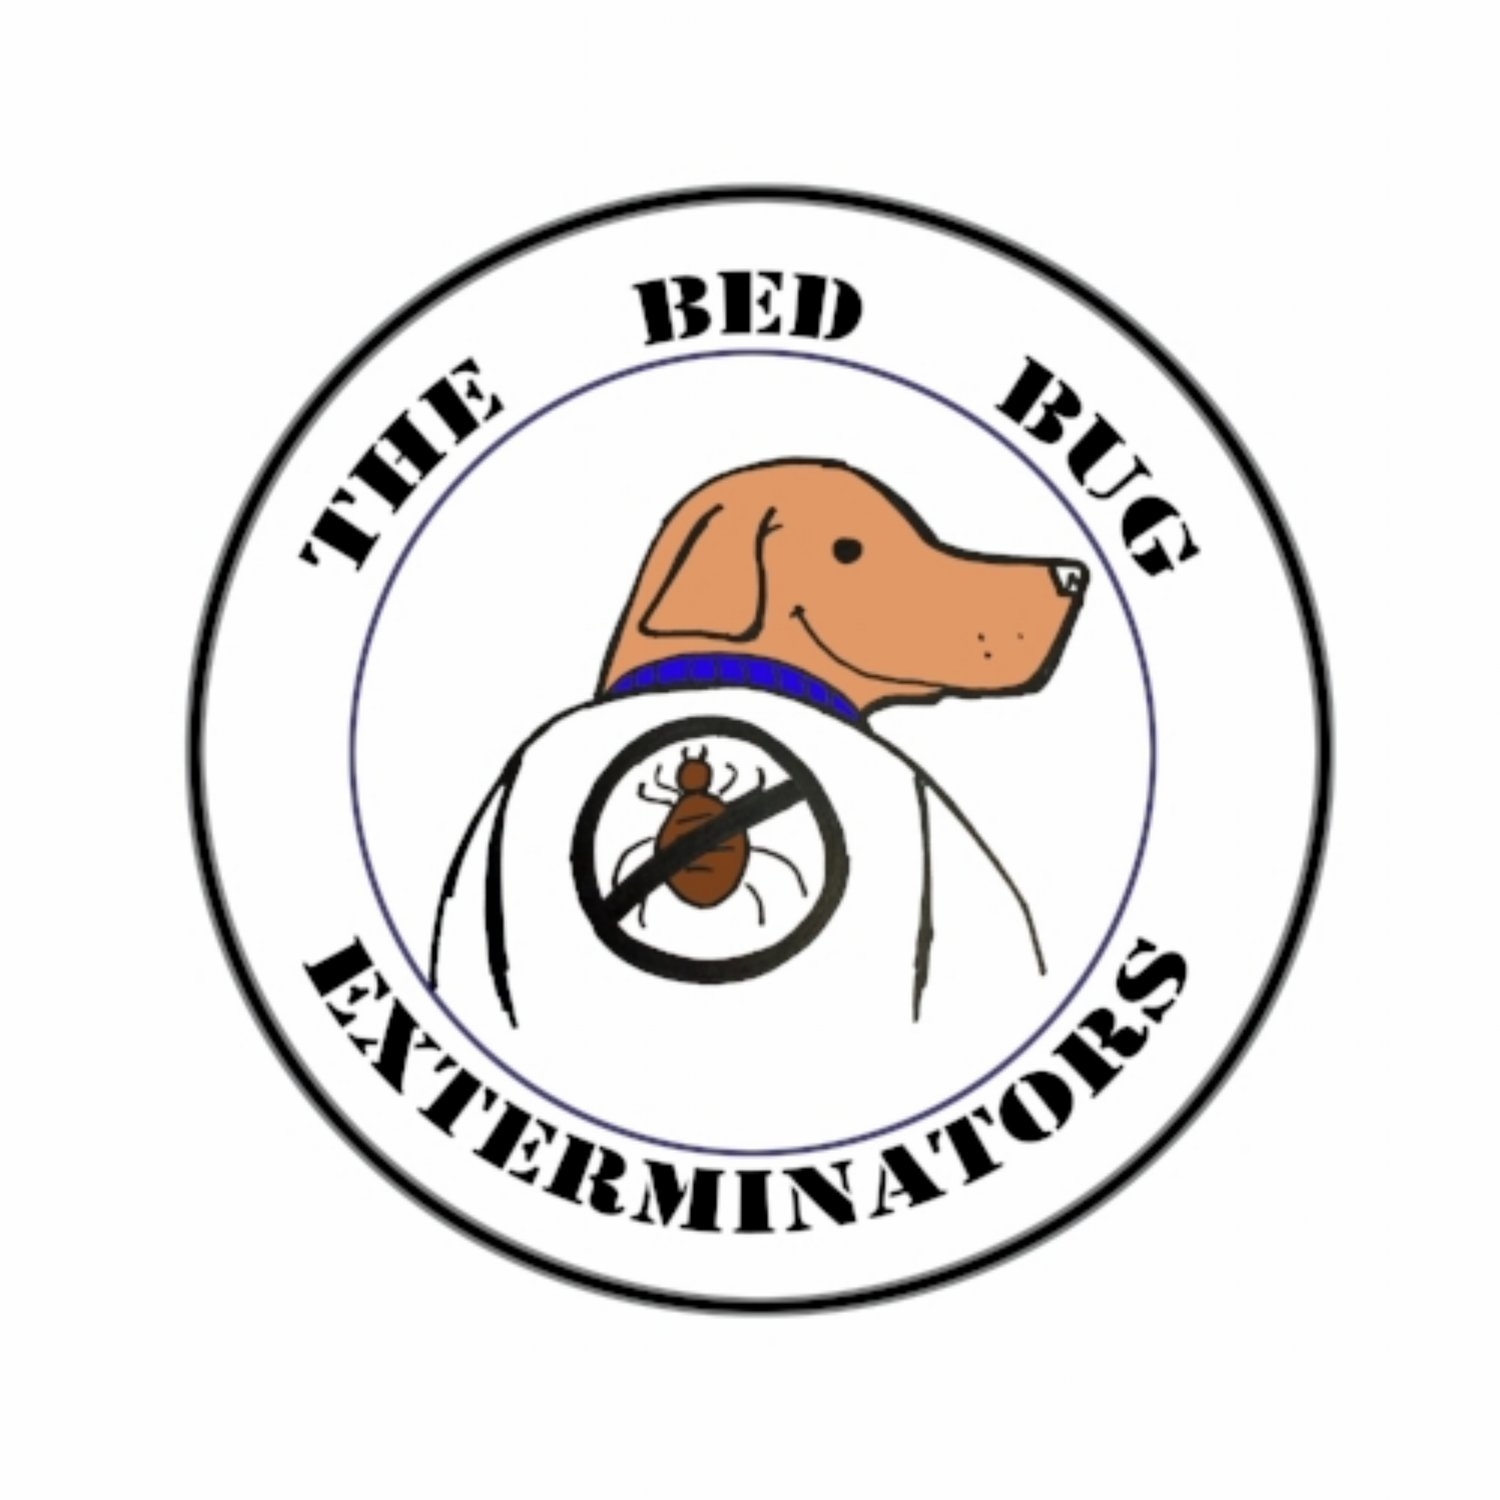 The Bed Bug Exterminators